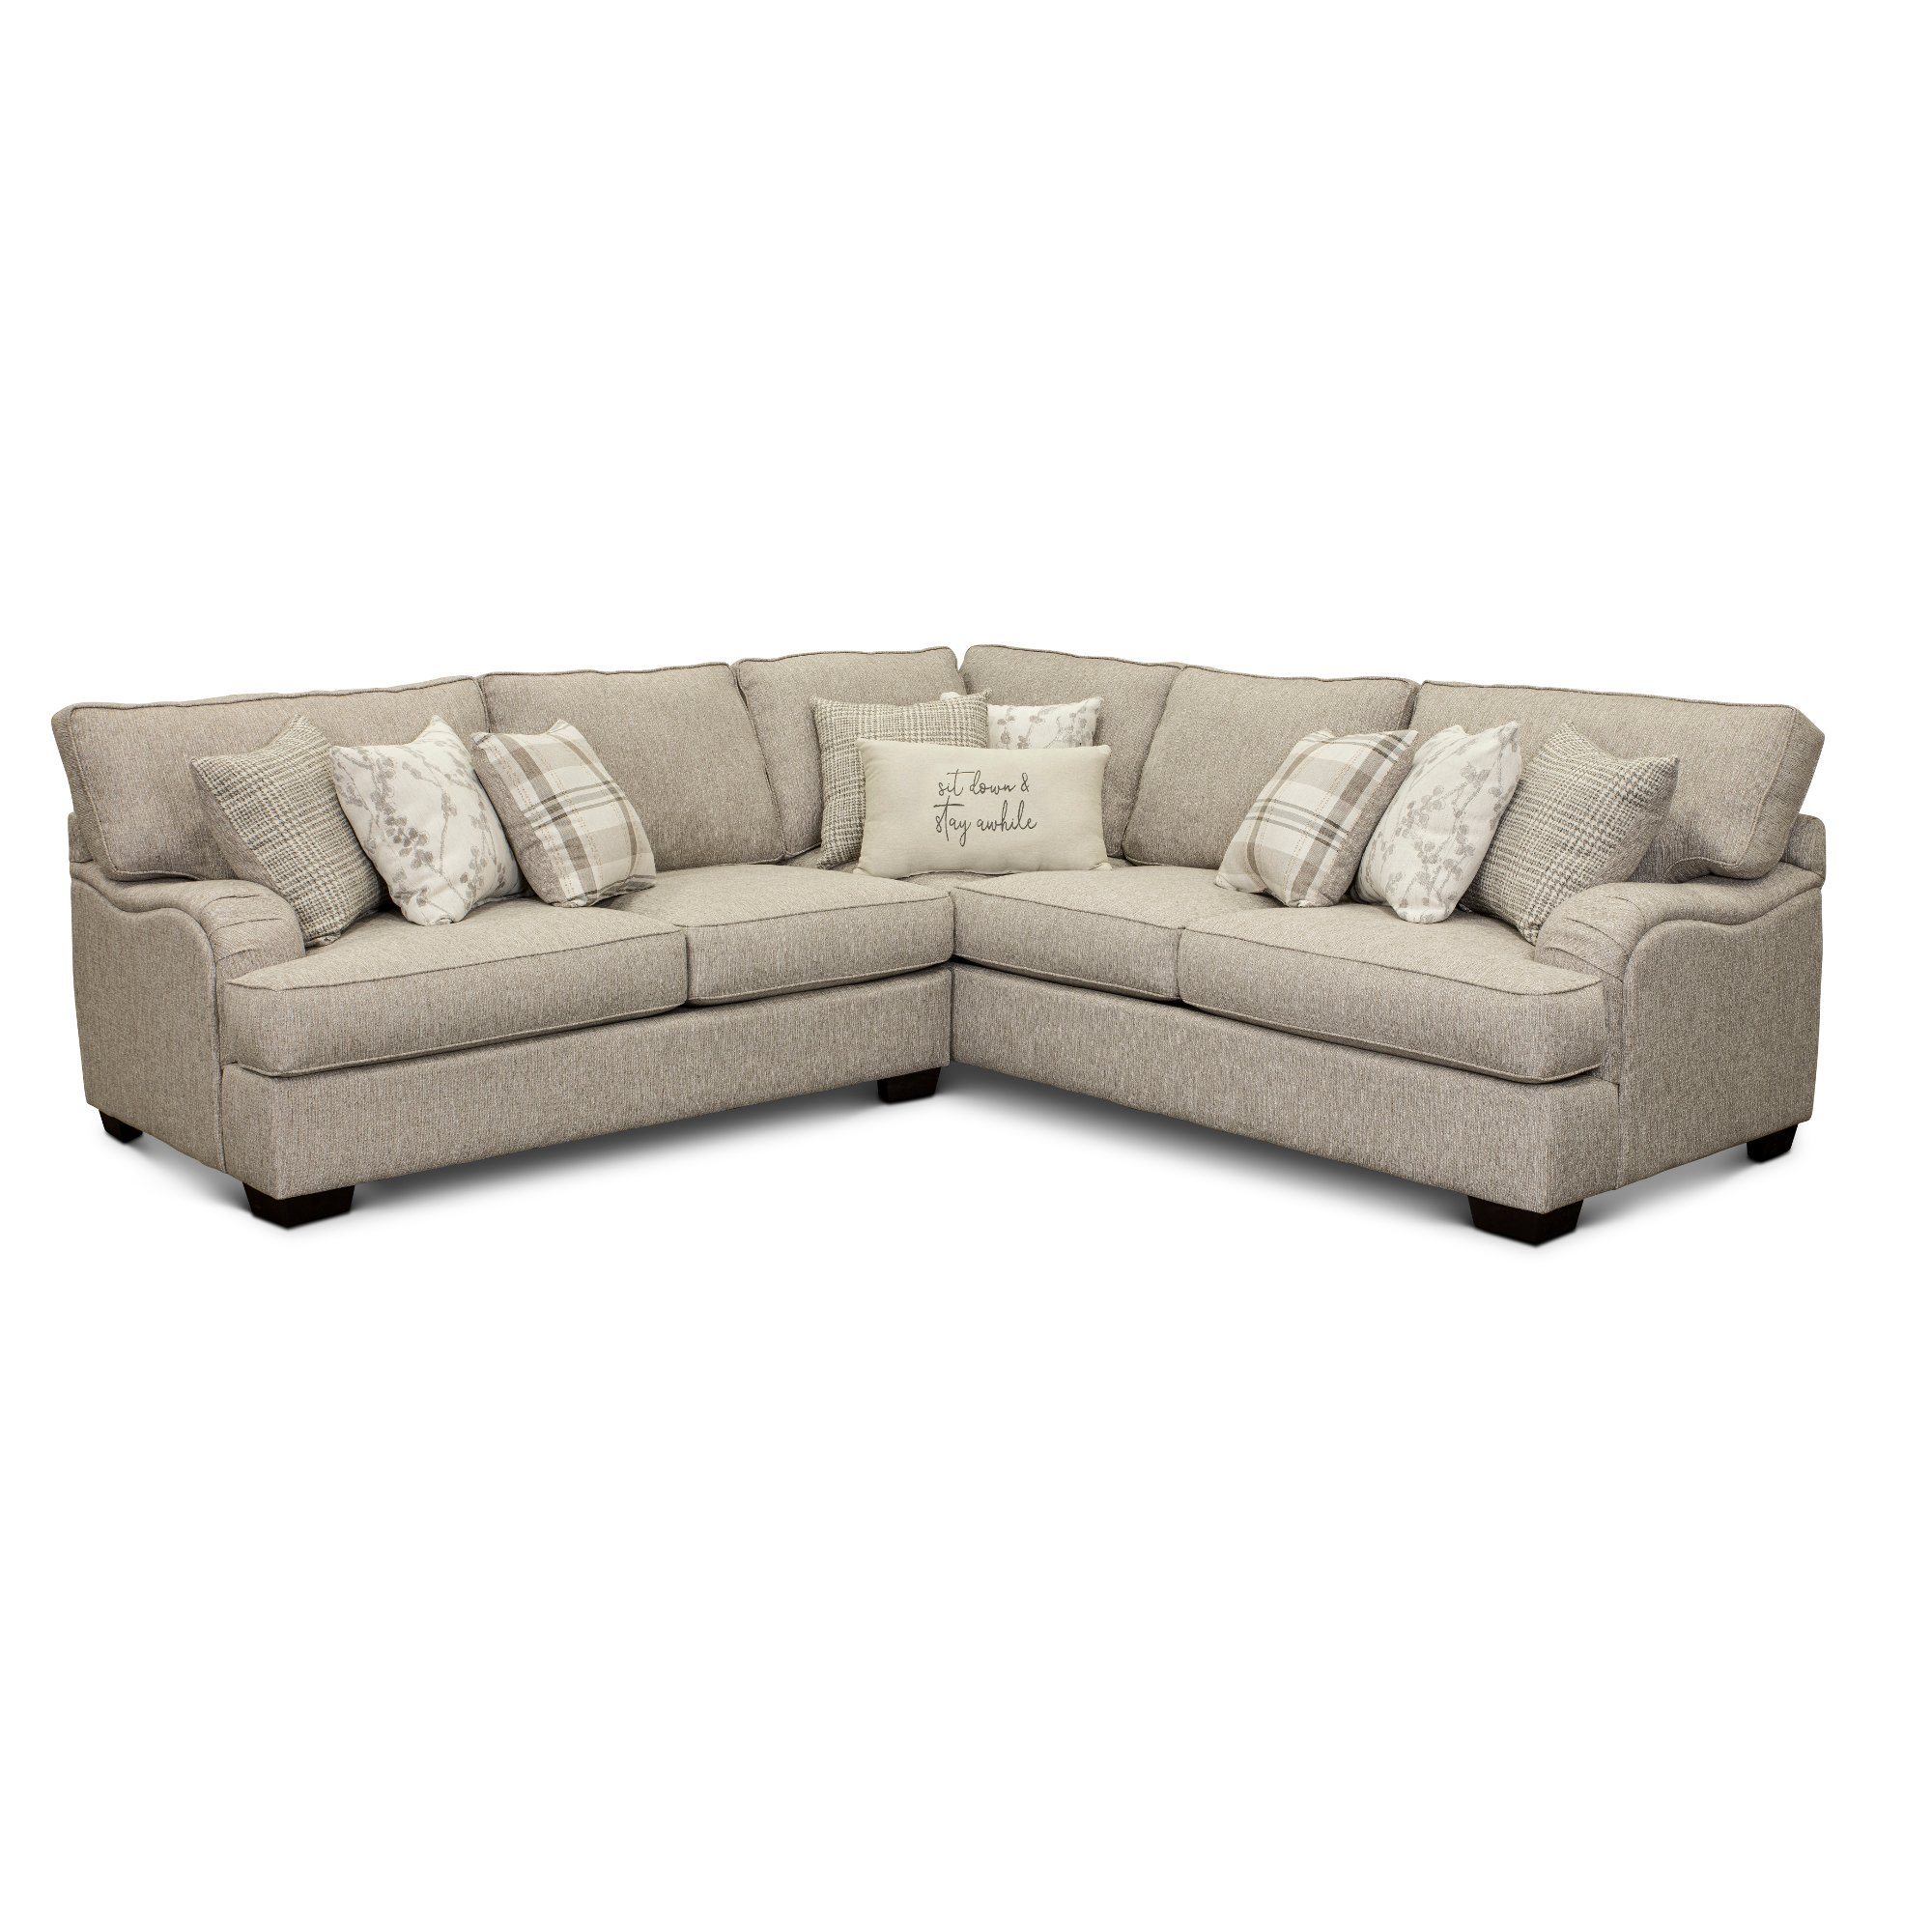 Beige 2 Piece Sectional Sofa With Laf Loveseat – Celadon Pertaining To Turdur 2 Piece Sectionals With Laf Loveseat (View 10 of 15)